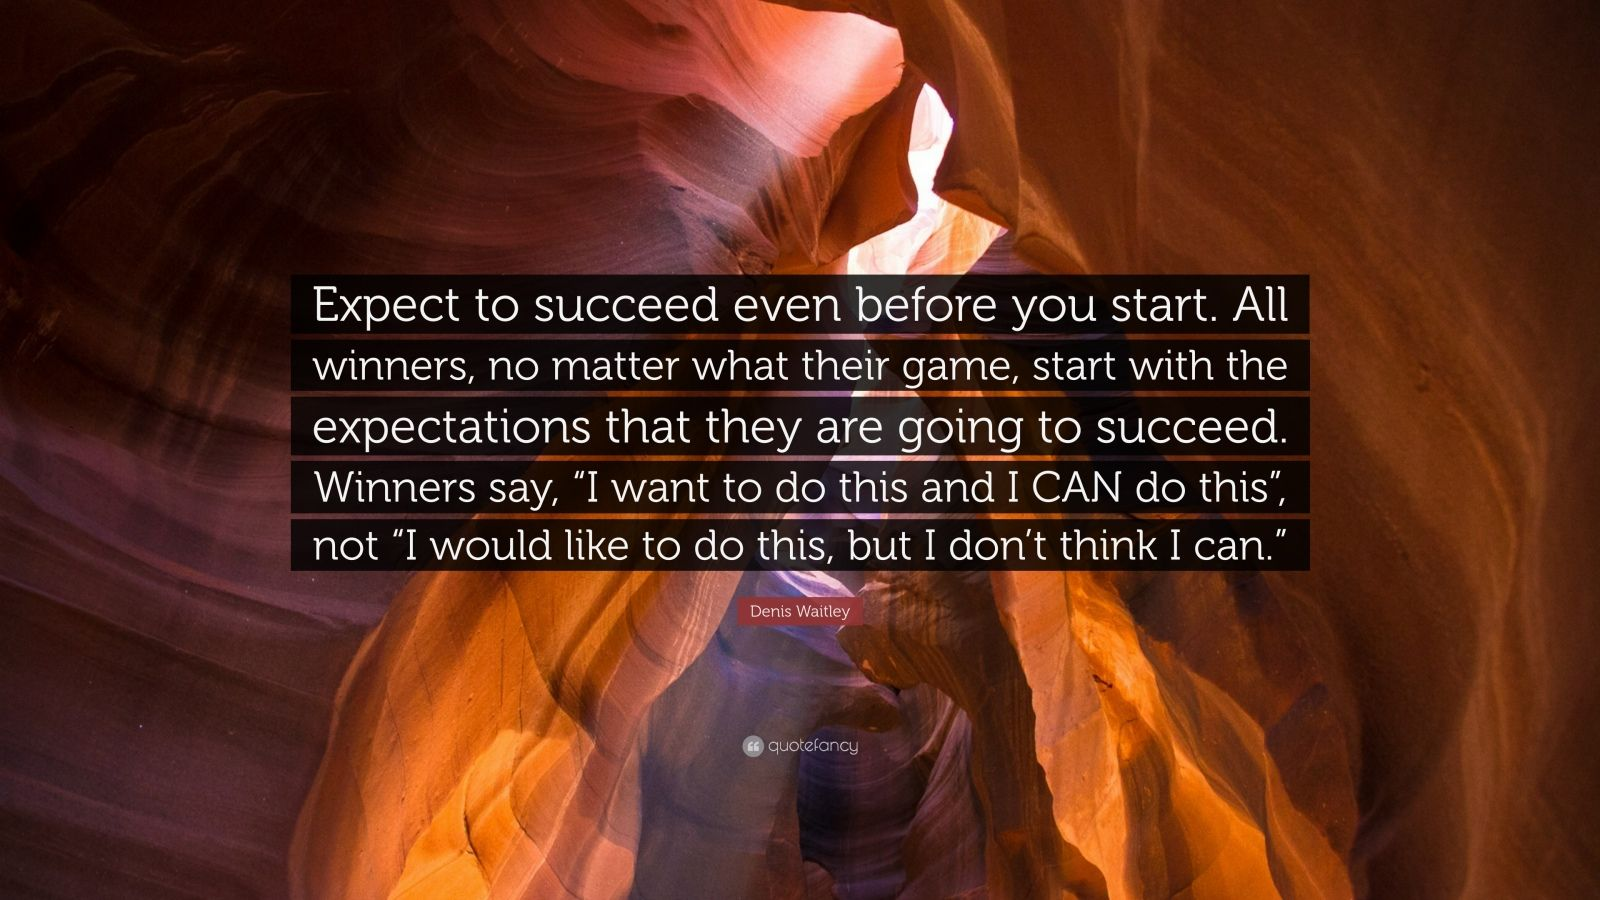 """Denis Waitley Quote: """"Expect to succeed even before you start. All winners, no matter what their game, start with the expectations that they are going to succeed. Winners say, """"I want to do this and I CAN do this"""", not """"I would like to do this, but I don't think I can."""""""""""